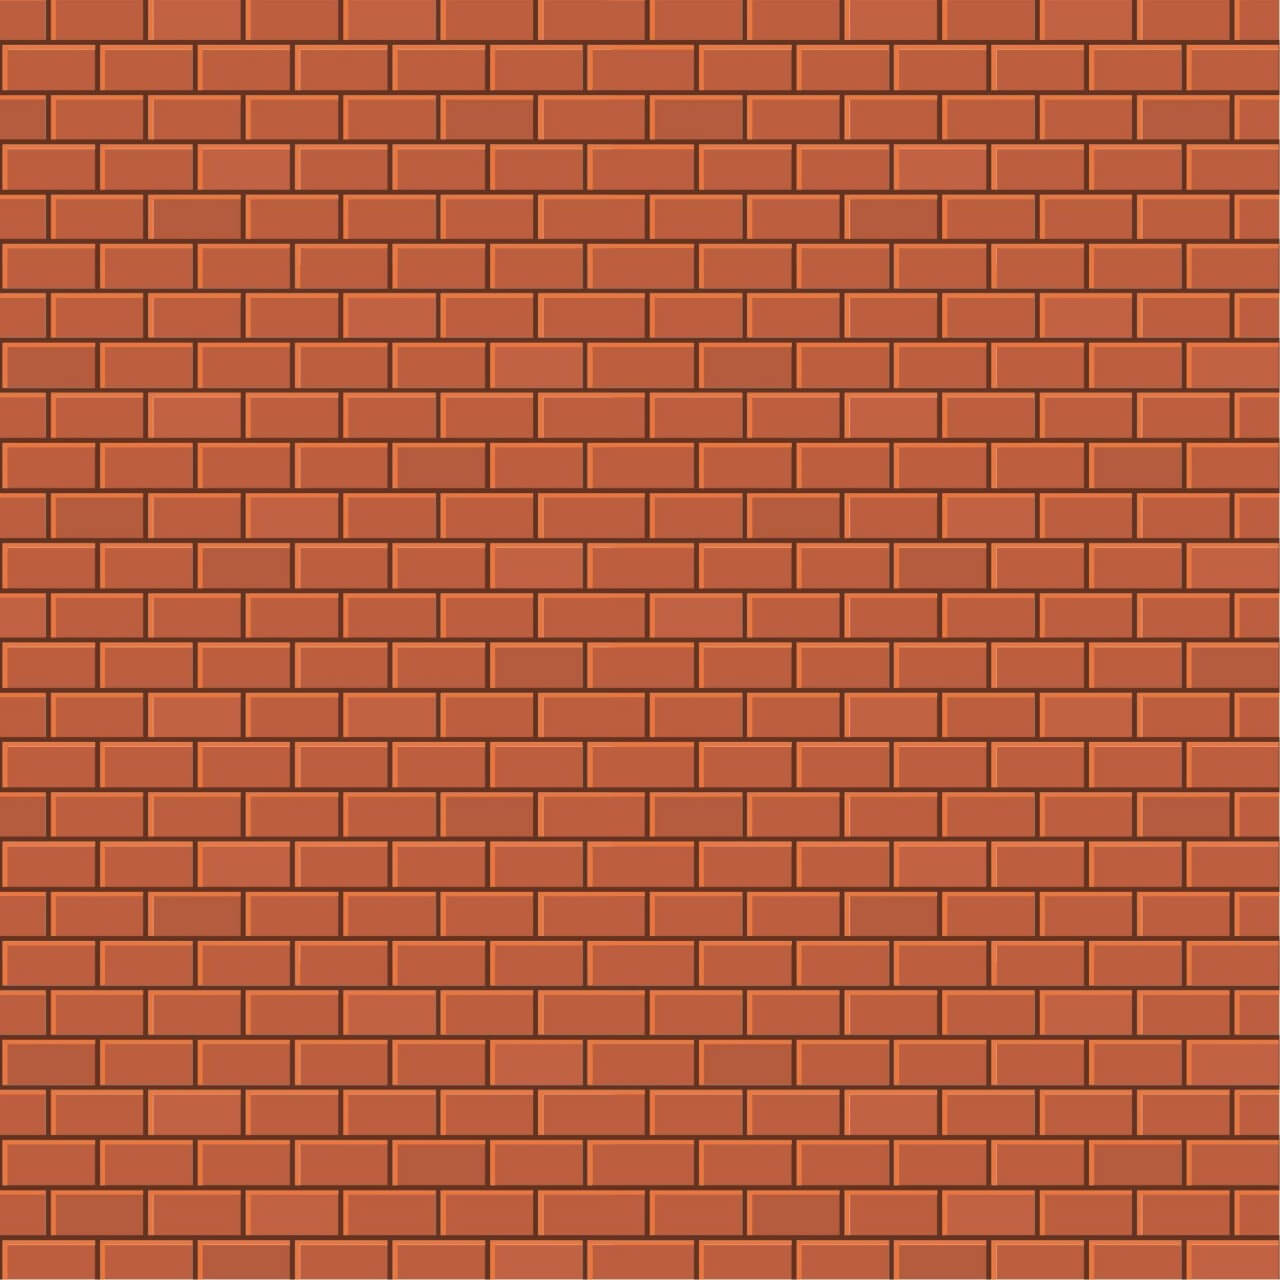 1280x1280 Free Vector Bricks Background